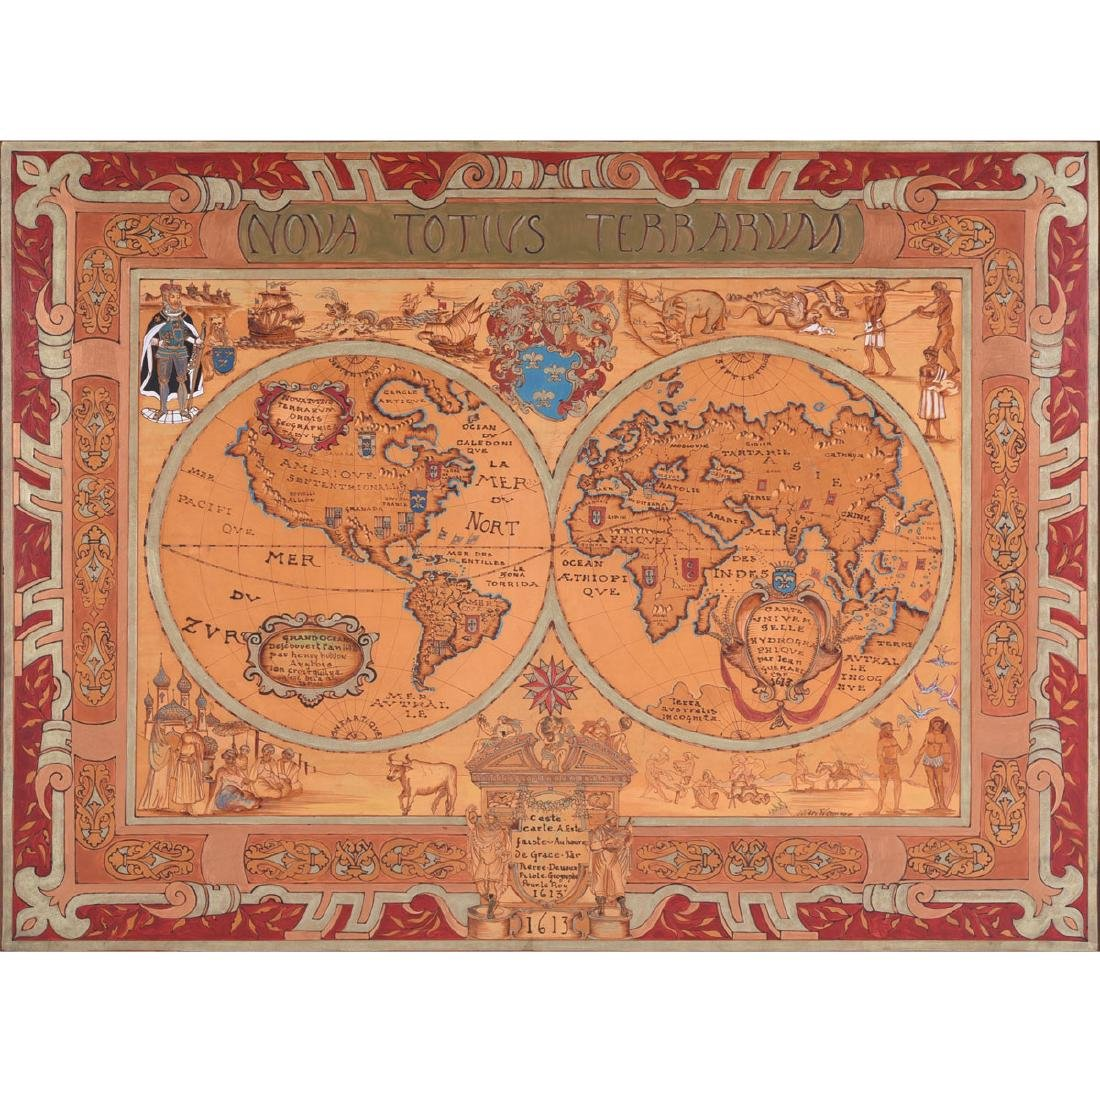 European School 20th century copy of a 1613 map painted